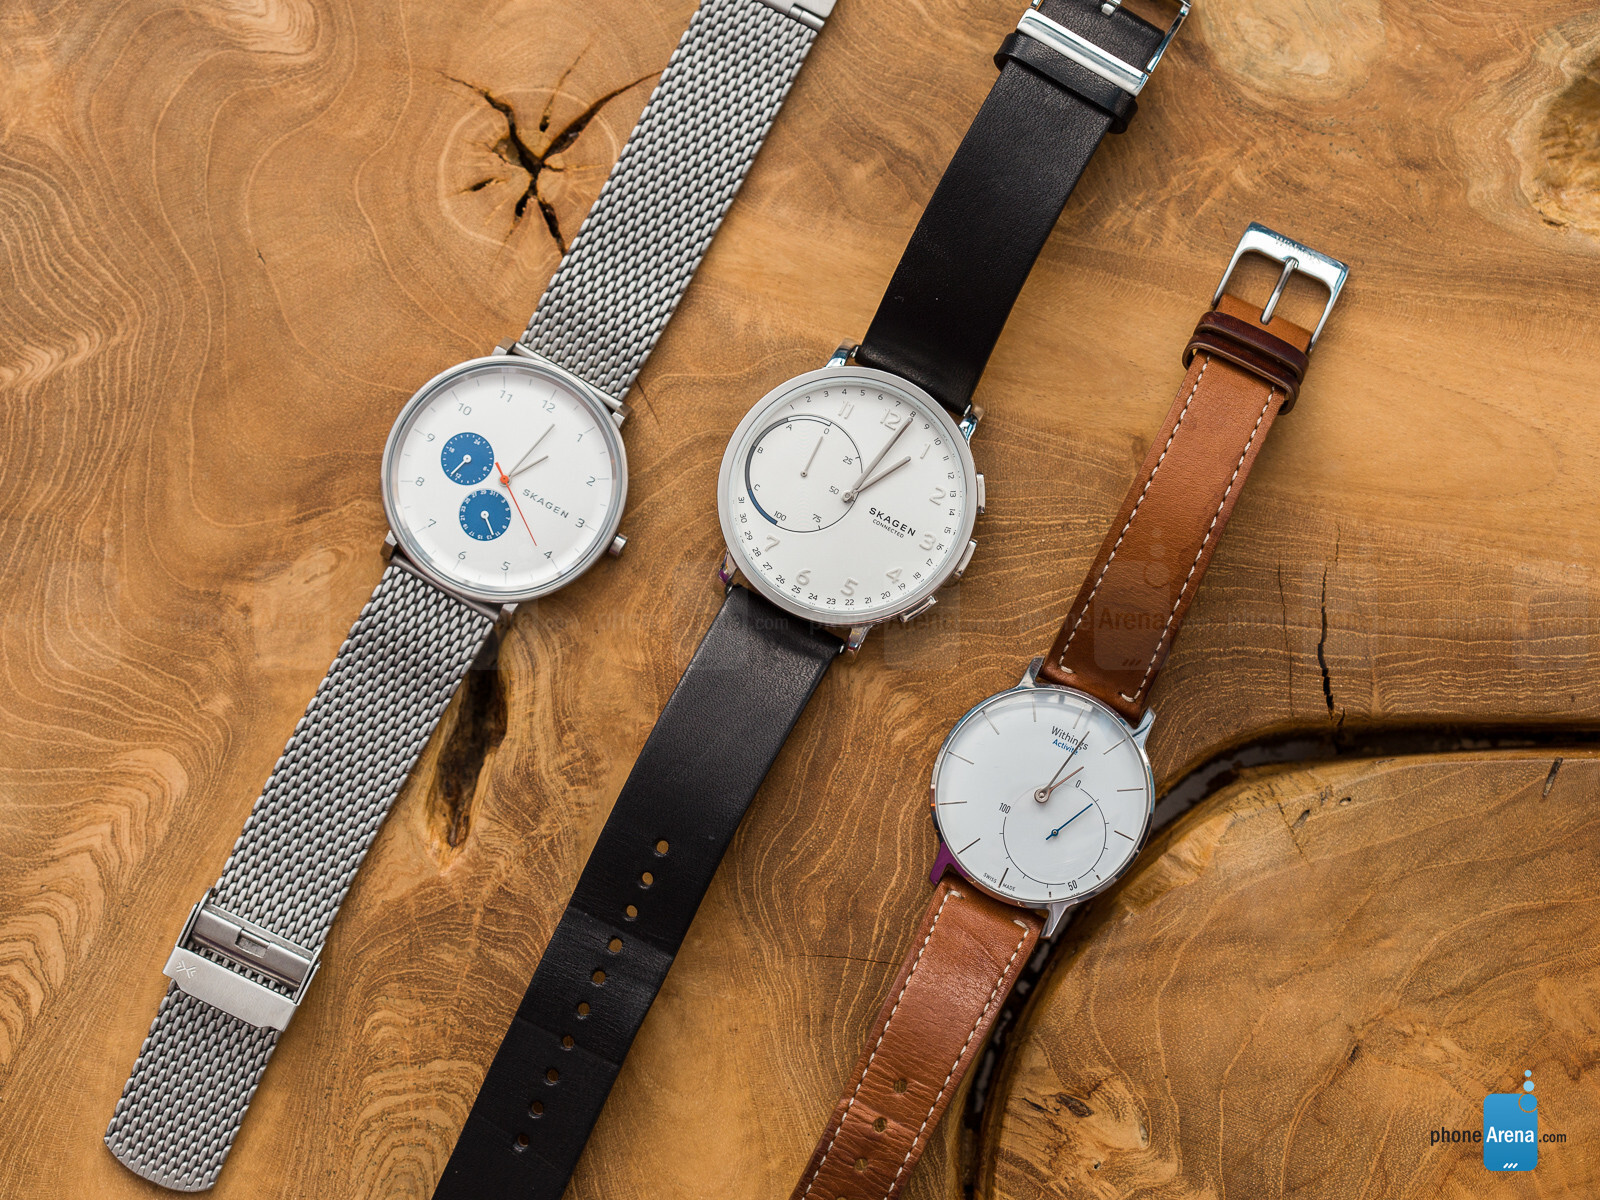 Skagen Hagen non-smart, Skagen Hagen Connected, Withings Activité Sapphire (left to right)